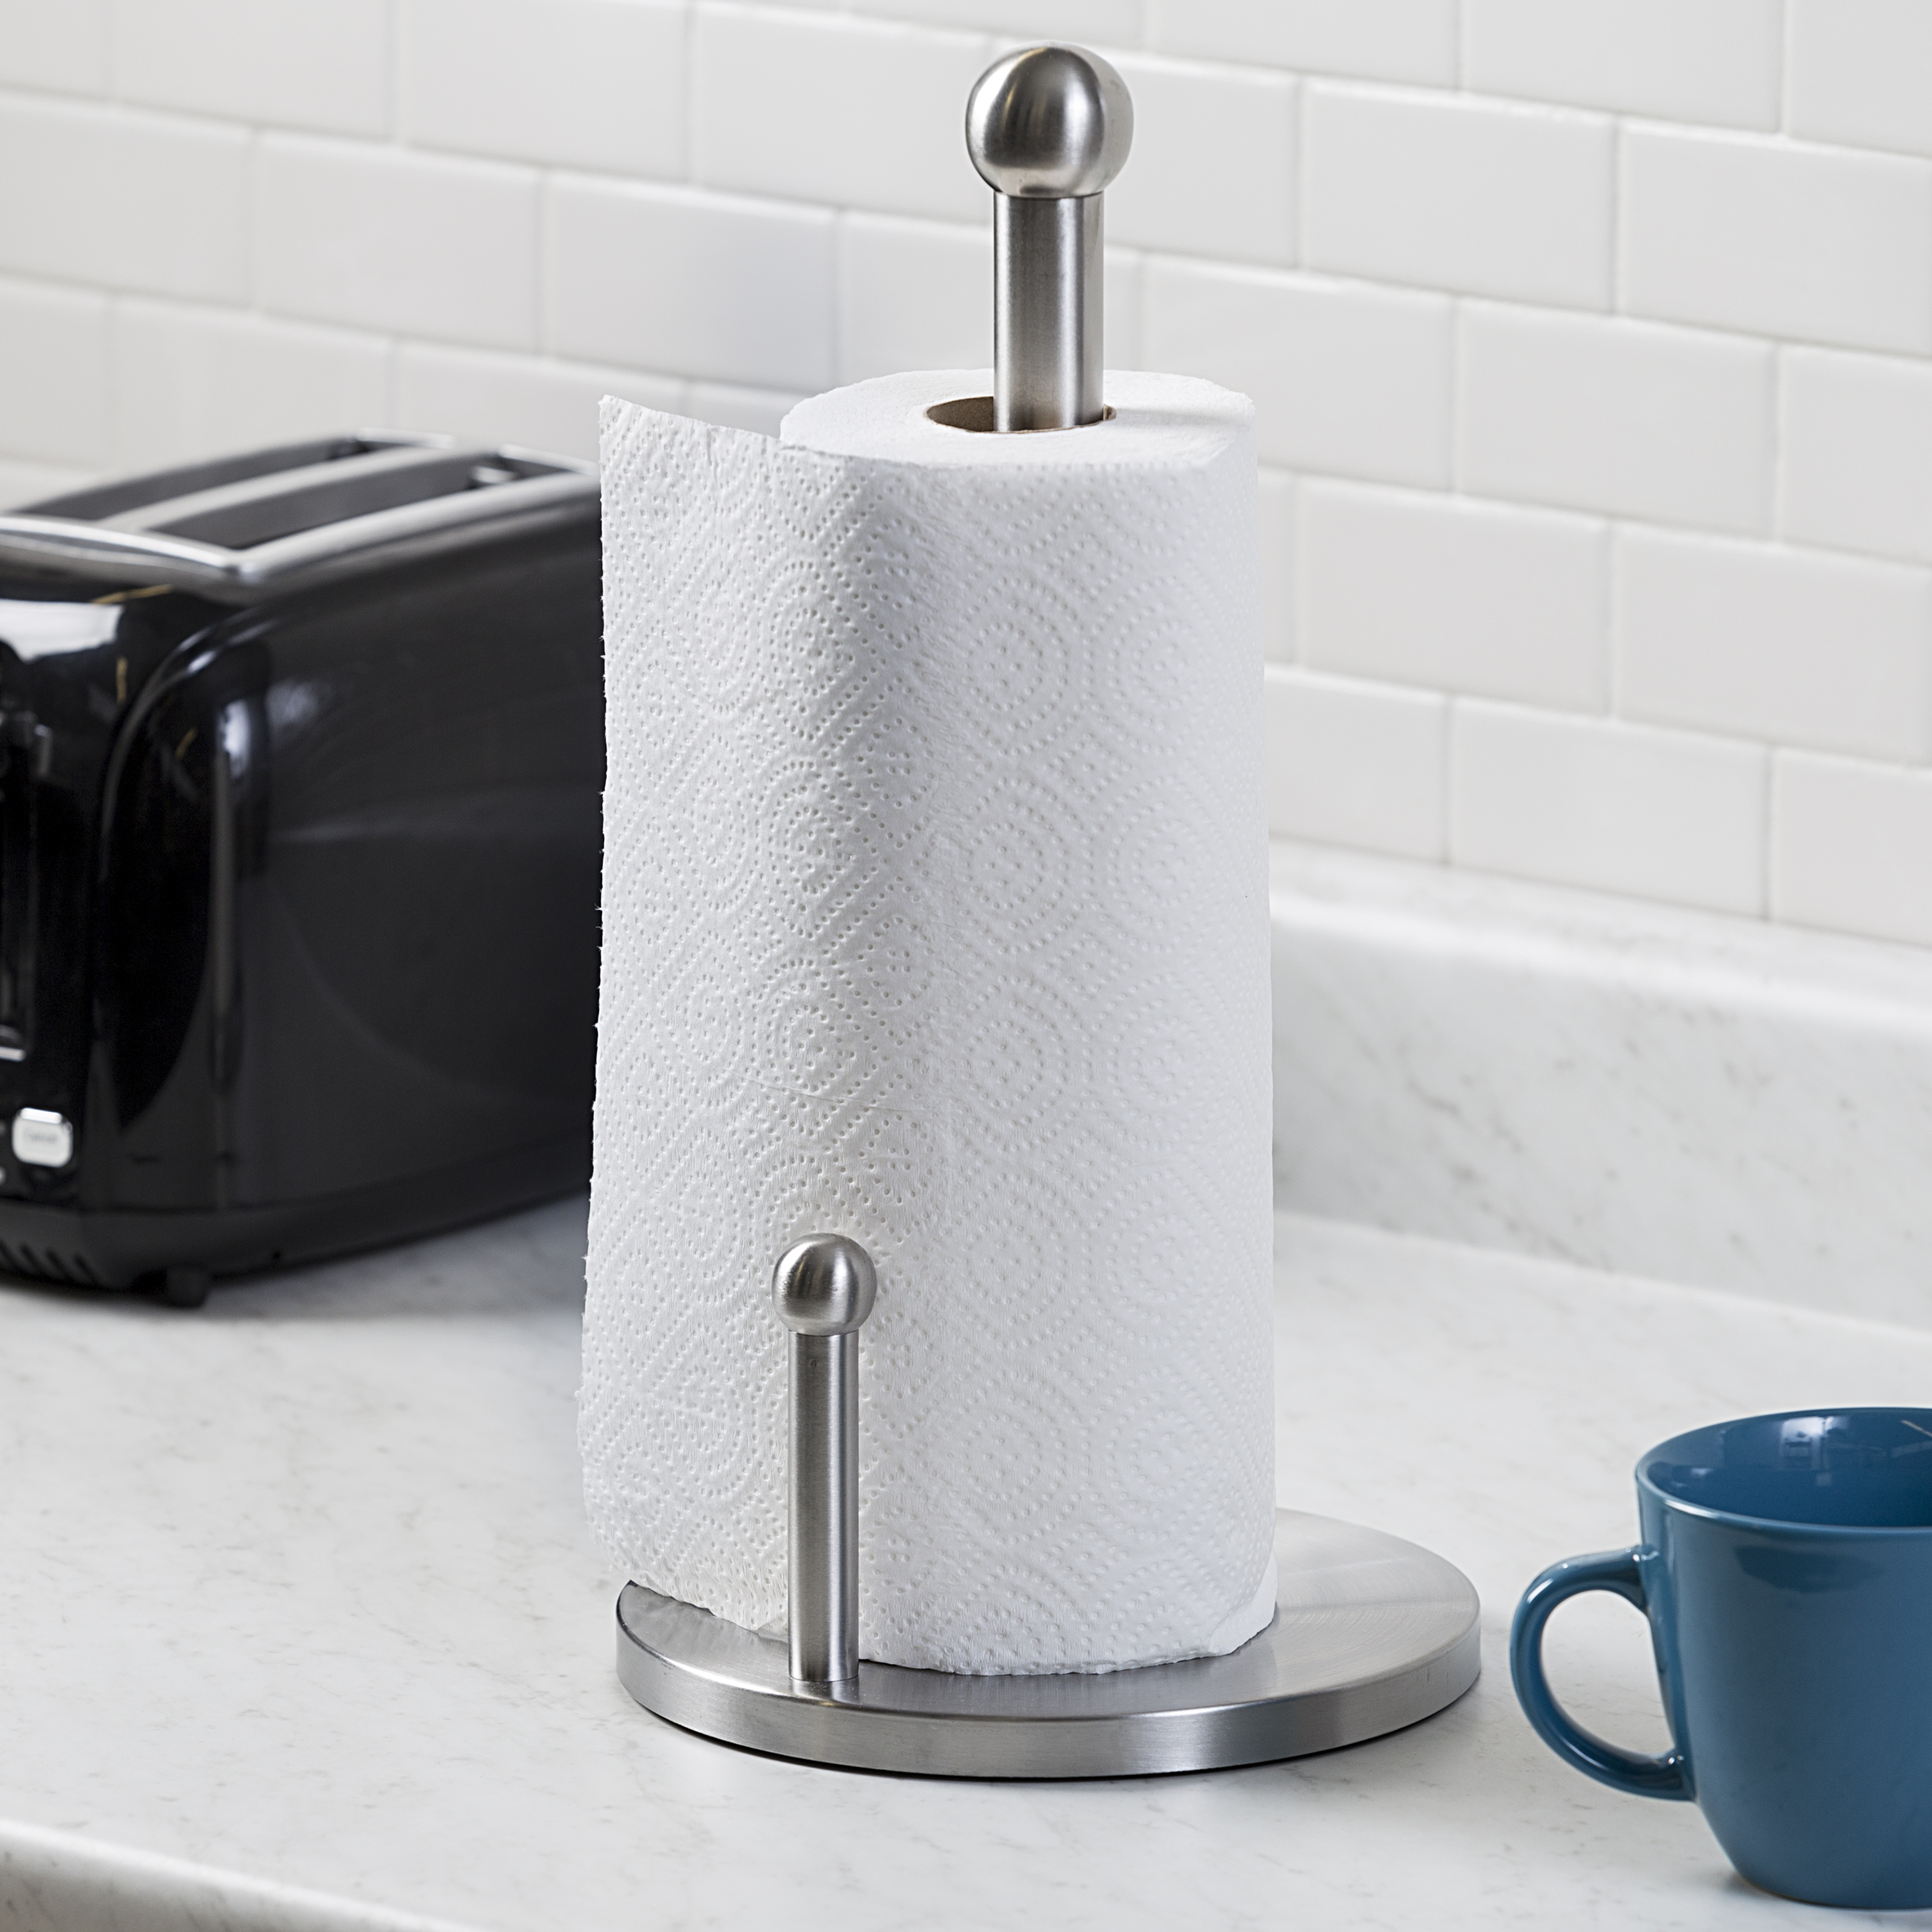 Honey Can Do Stainless Steel Paper Towel Holder, Silver   Walmart.com